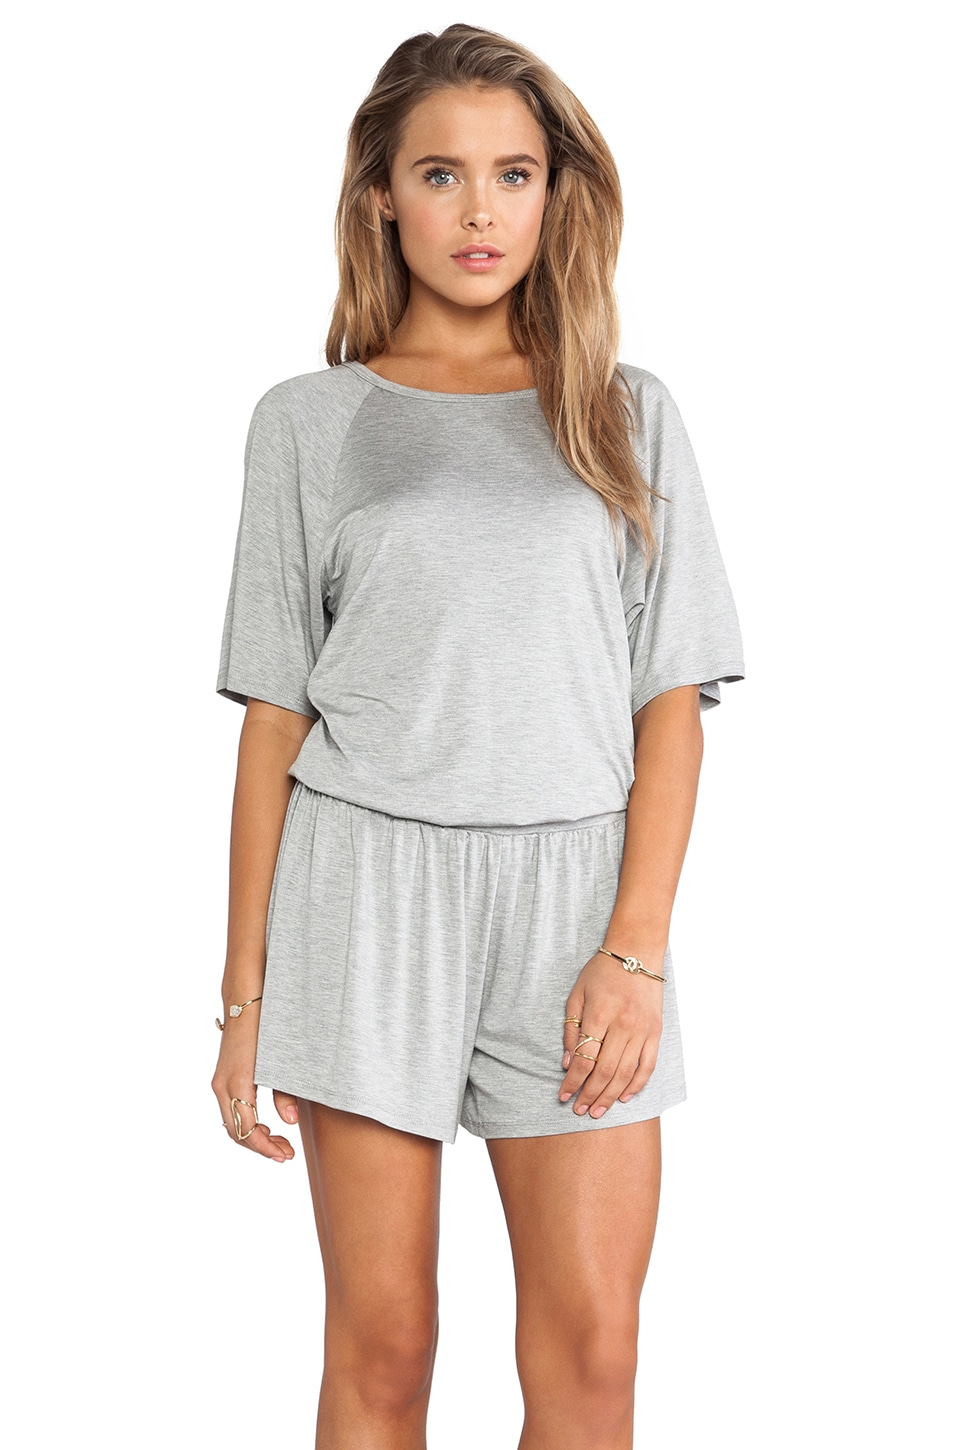 Trina Turk Lucille Romper in Heather Grey